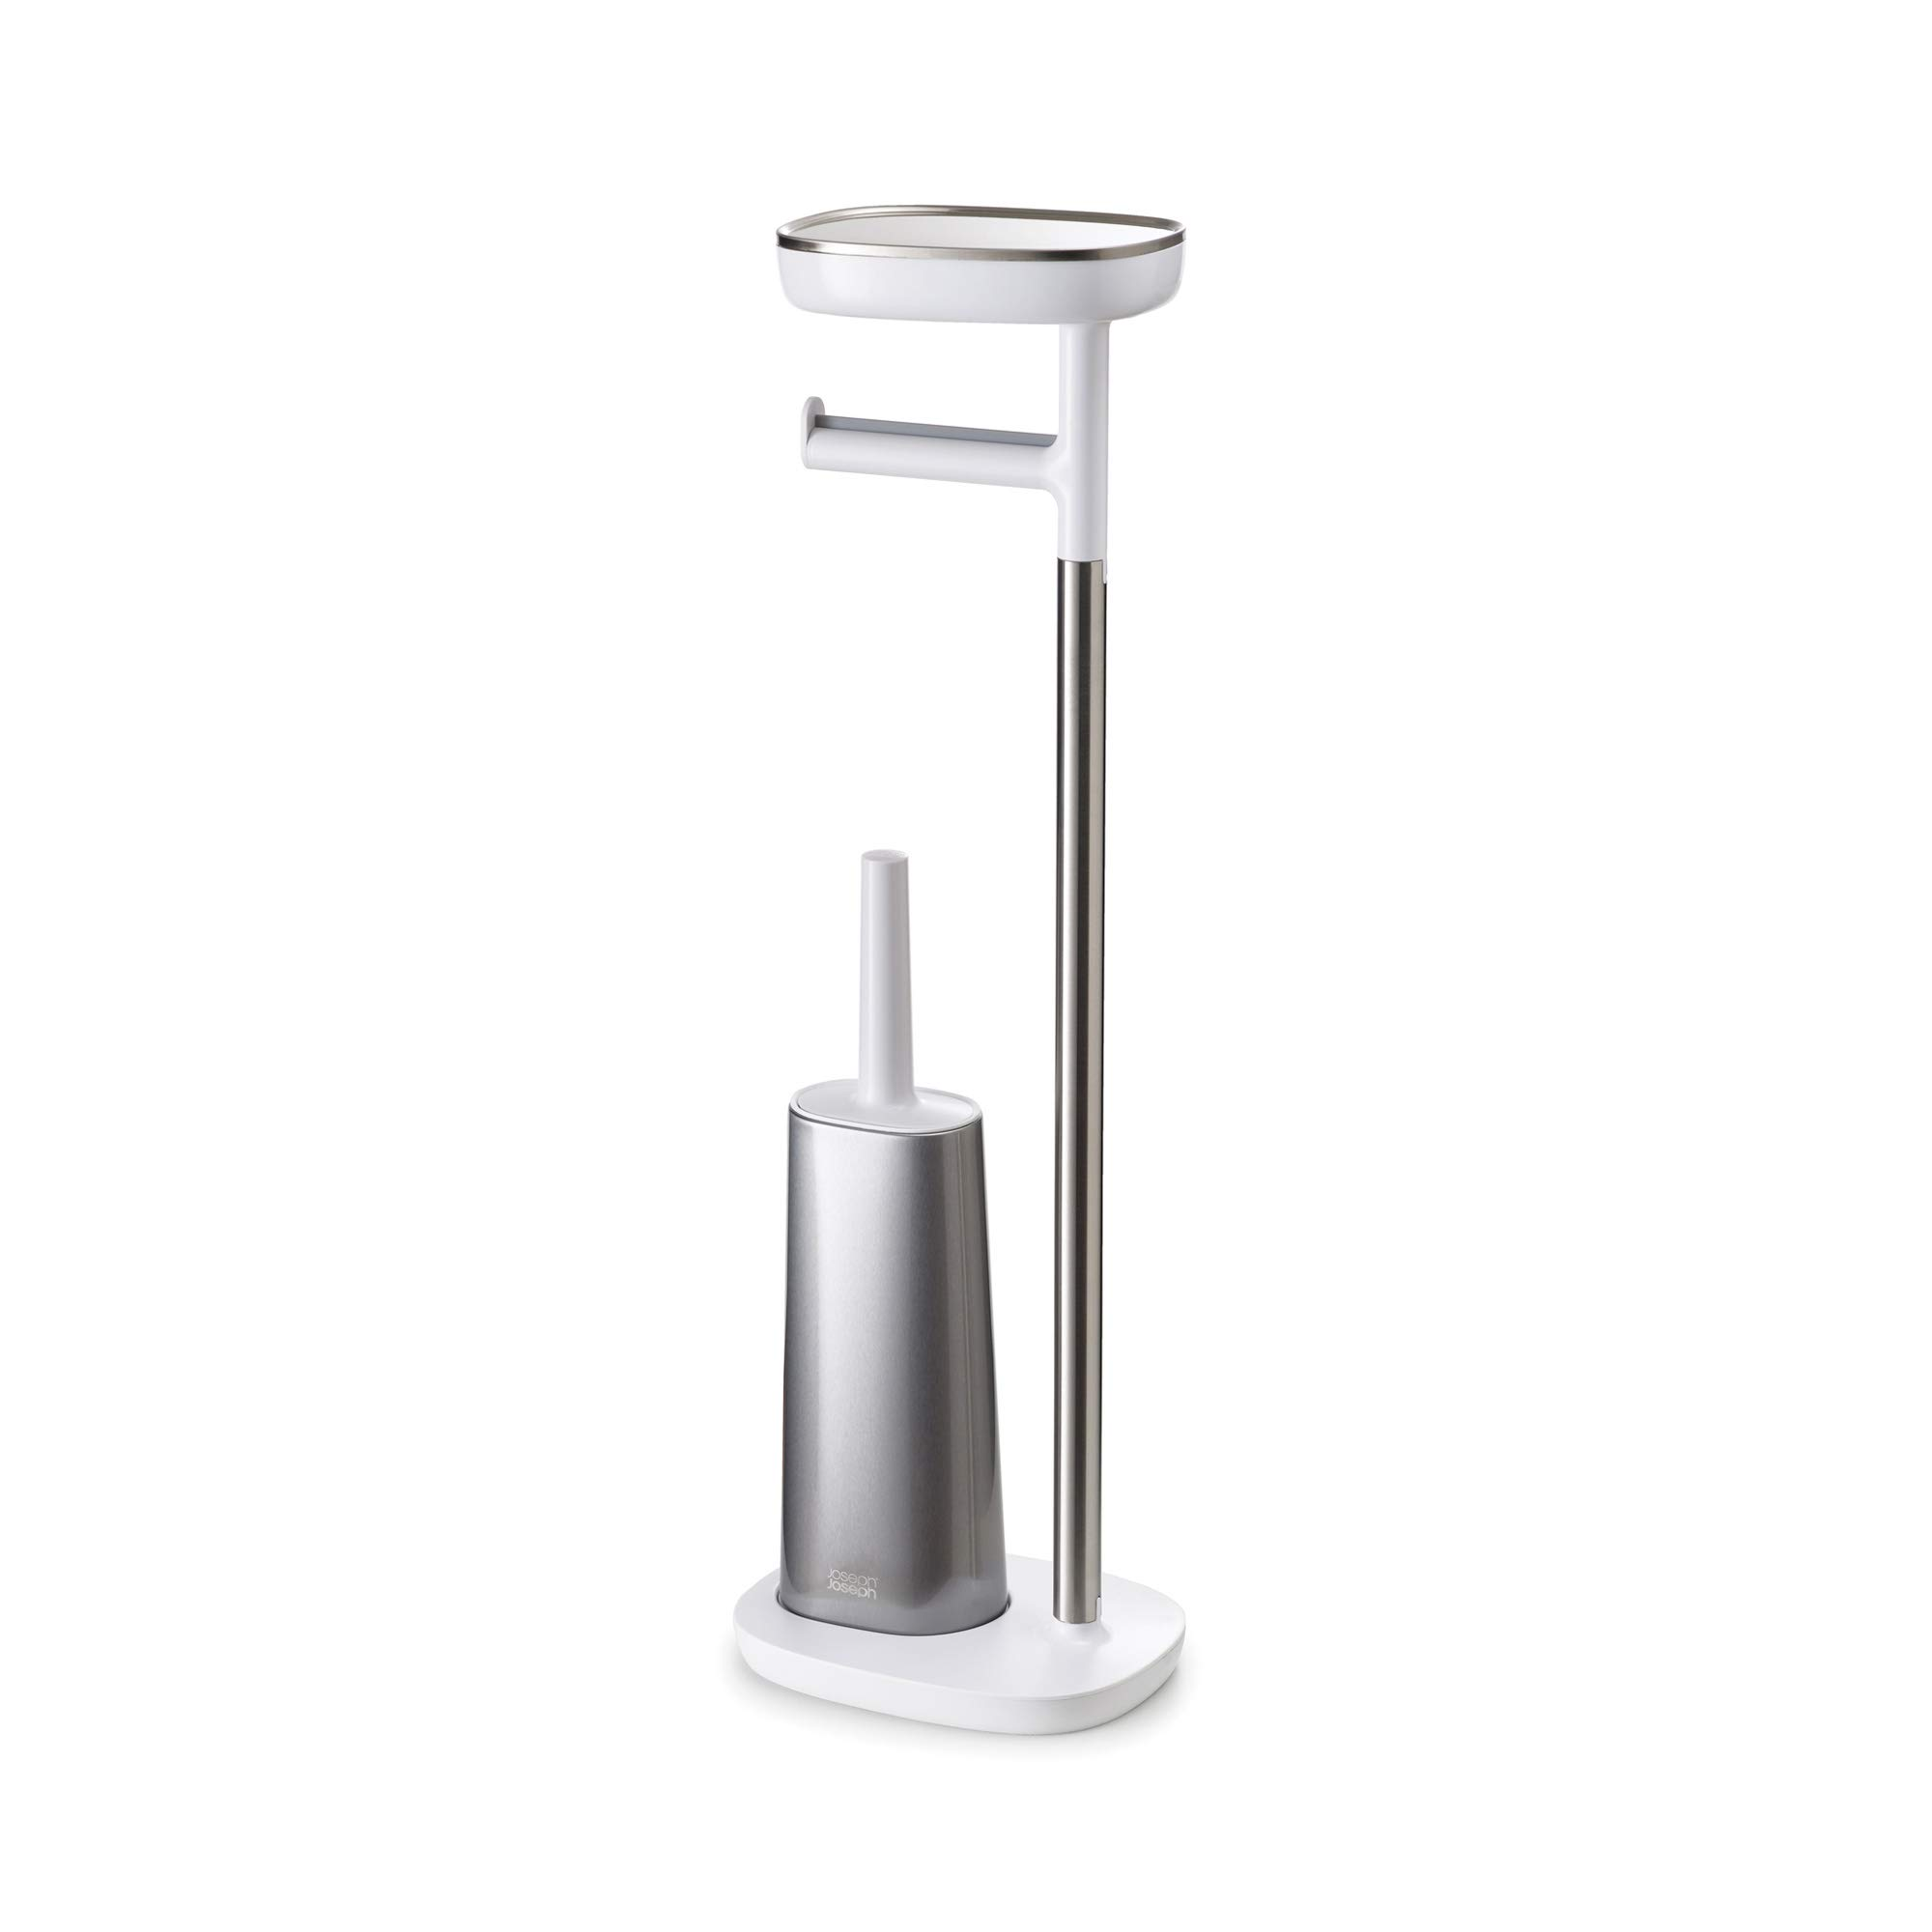 Joseph Joseph 70519 EasyStore Butler Toilet Paper Holder Stand and Flex Toilet Brush with Shelf and Drawer, Stainless Steel